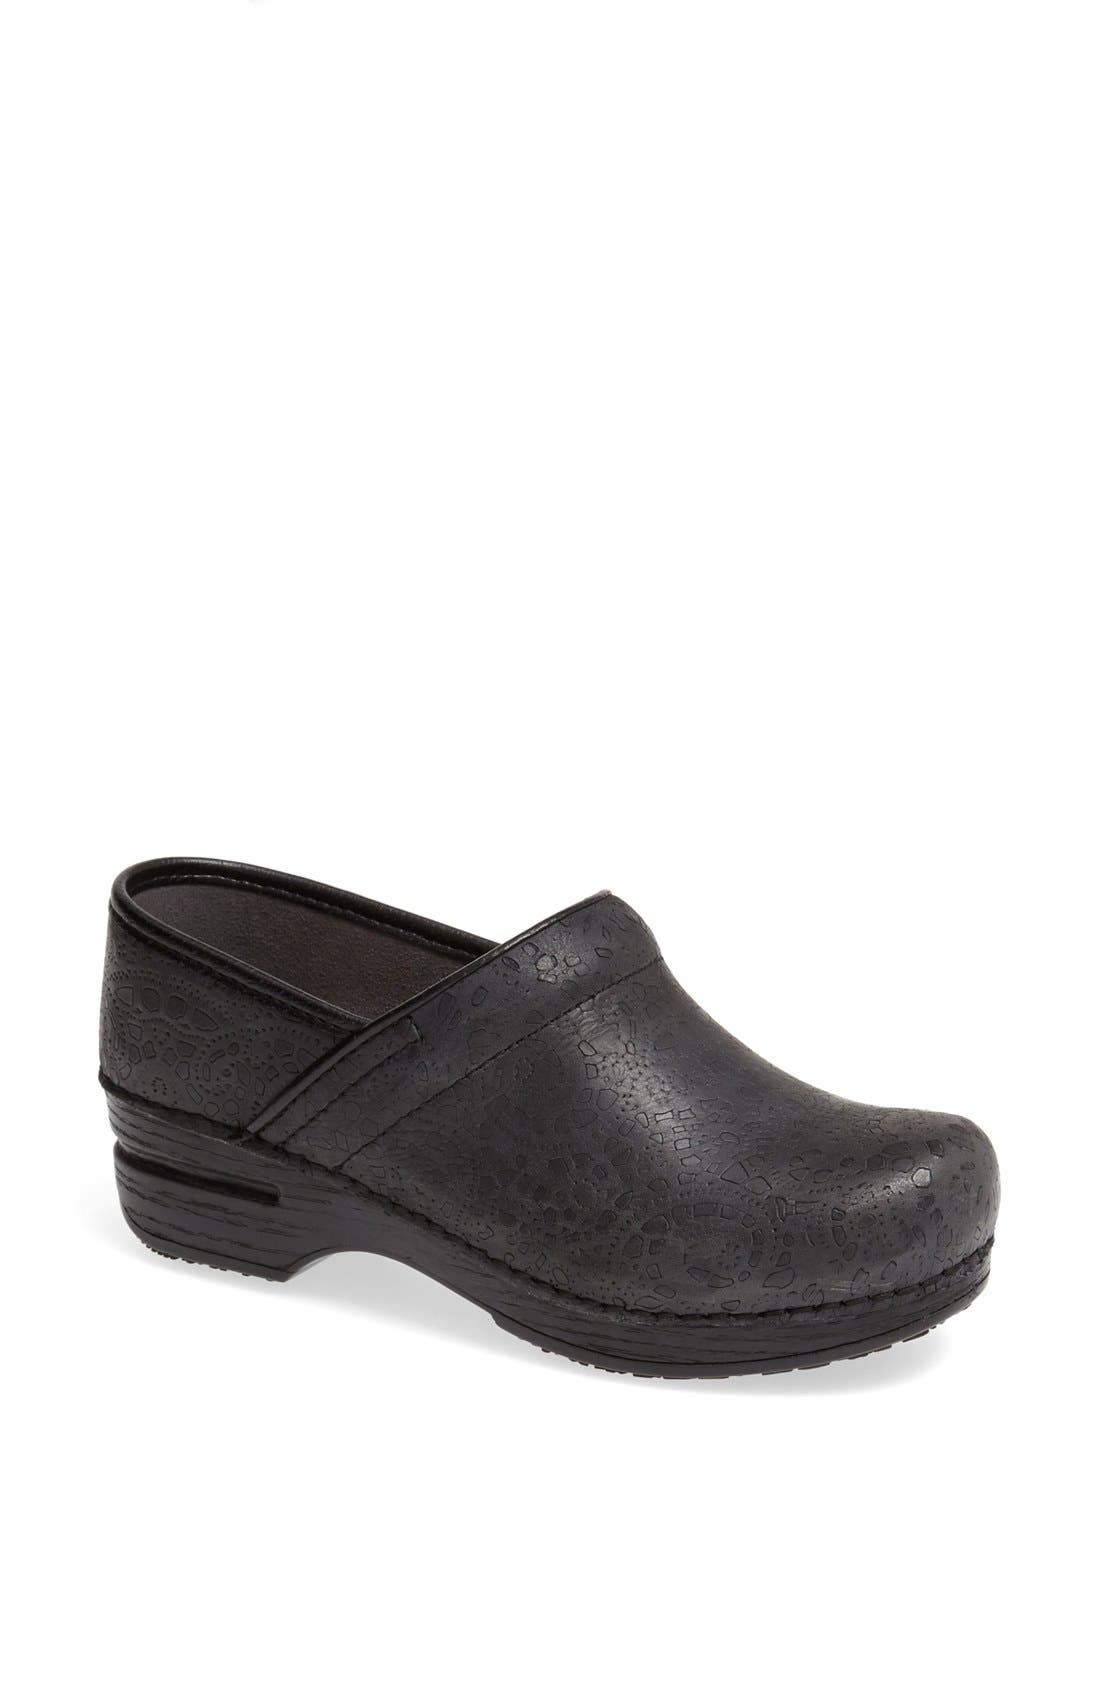 Alternate Image 1 Selected - Dansko 'Pro XP' Clog